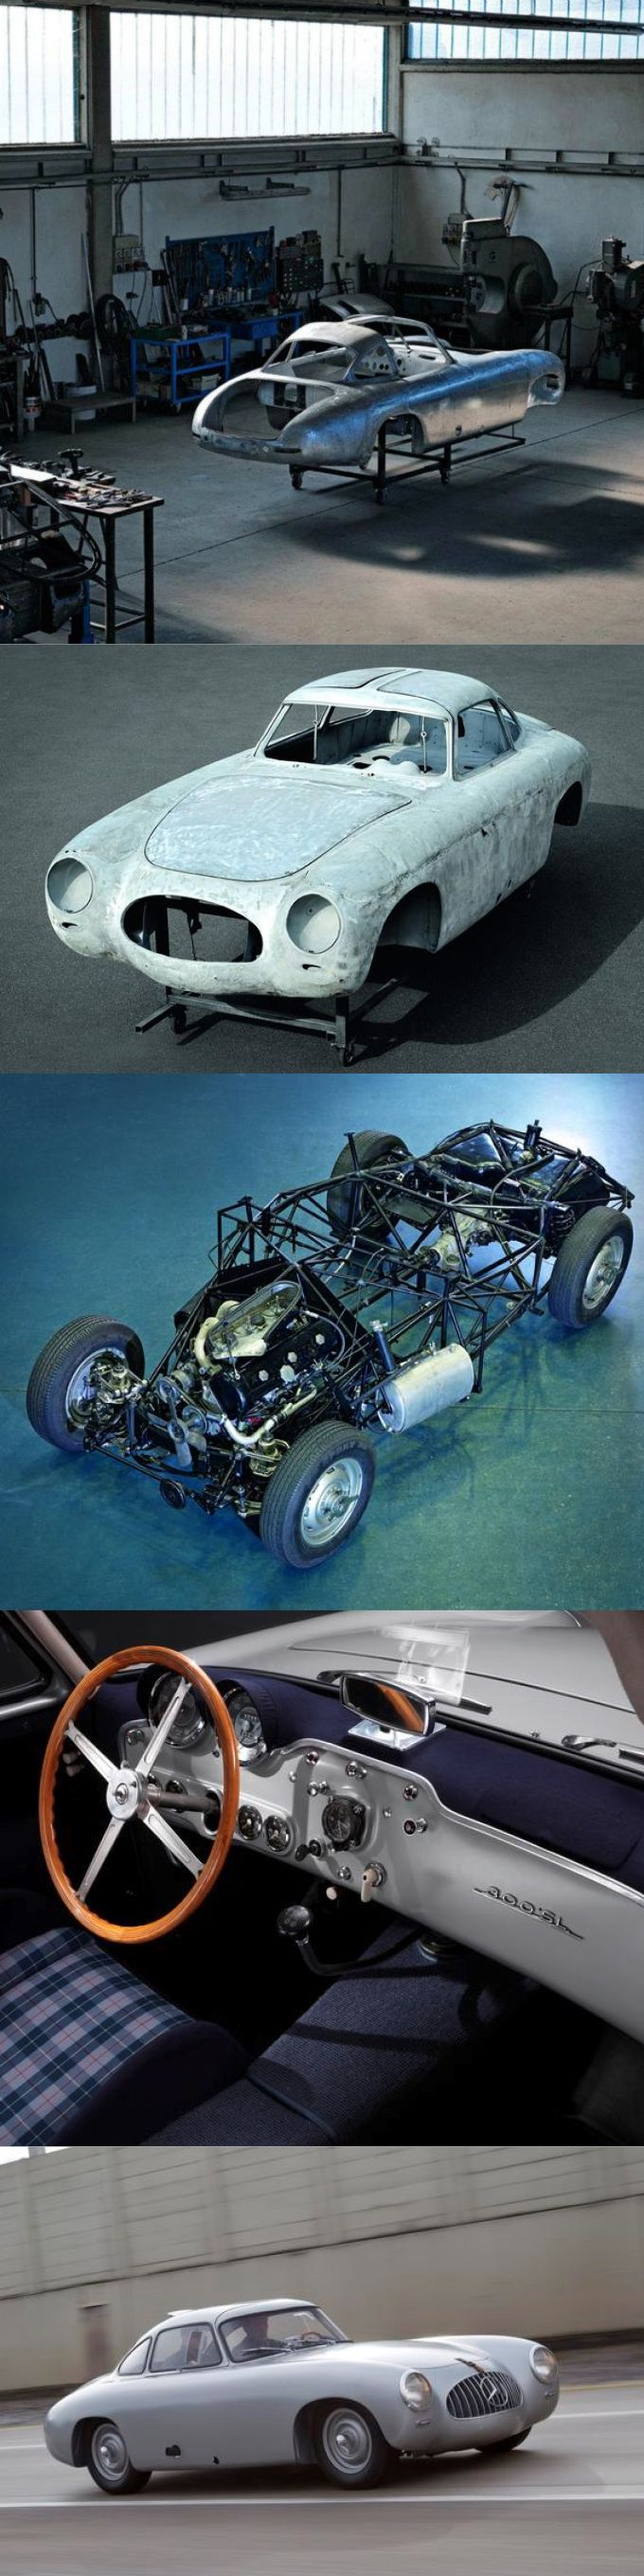 1951 Mercedes-Benz 300 SL / W194 / restoration of the 2nd ever made as well as the oldest survivor / 170hp 3.0l L6 / Uhlenhaut / silver blue / Germany